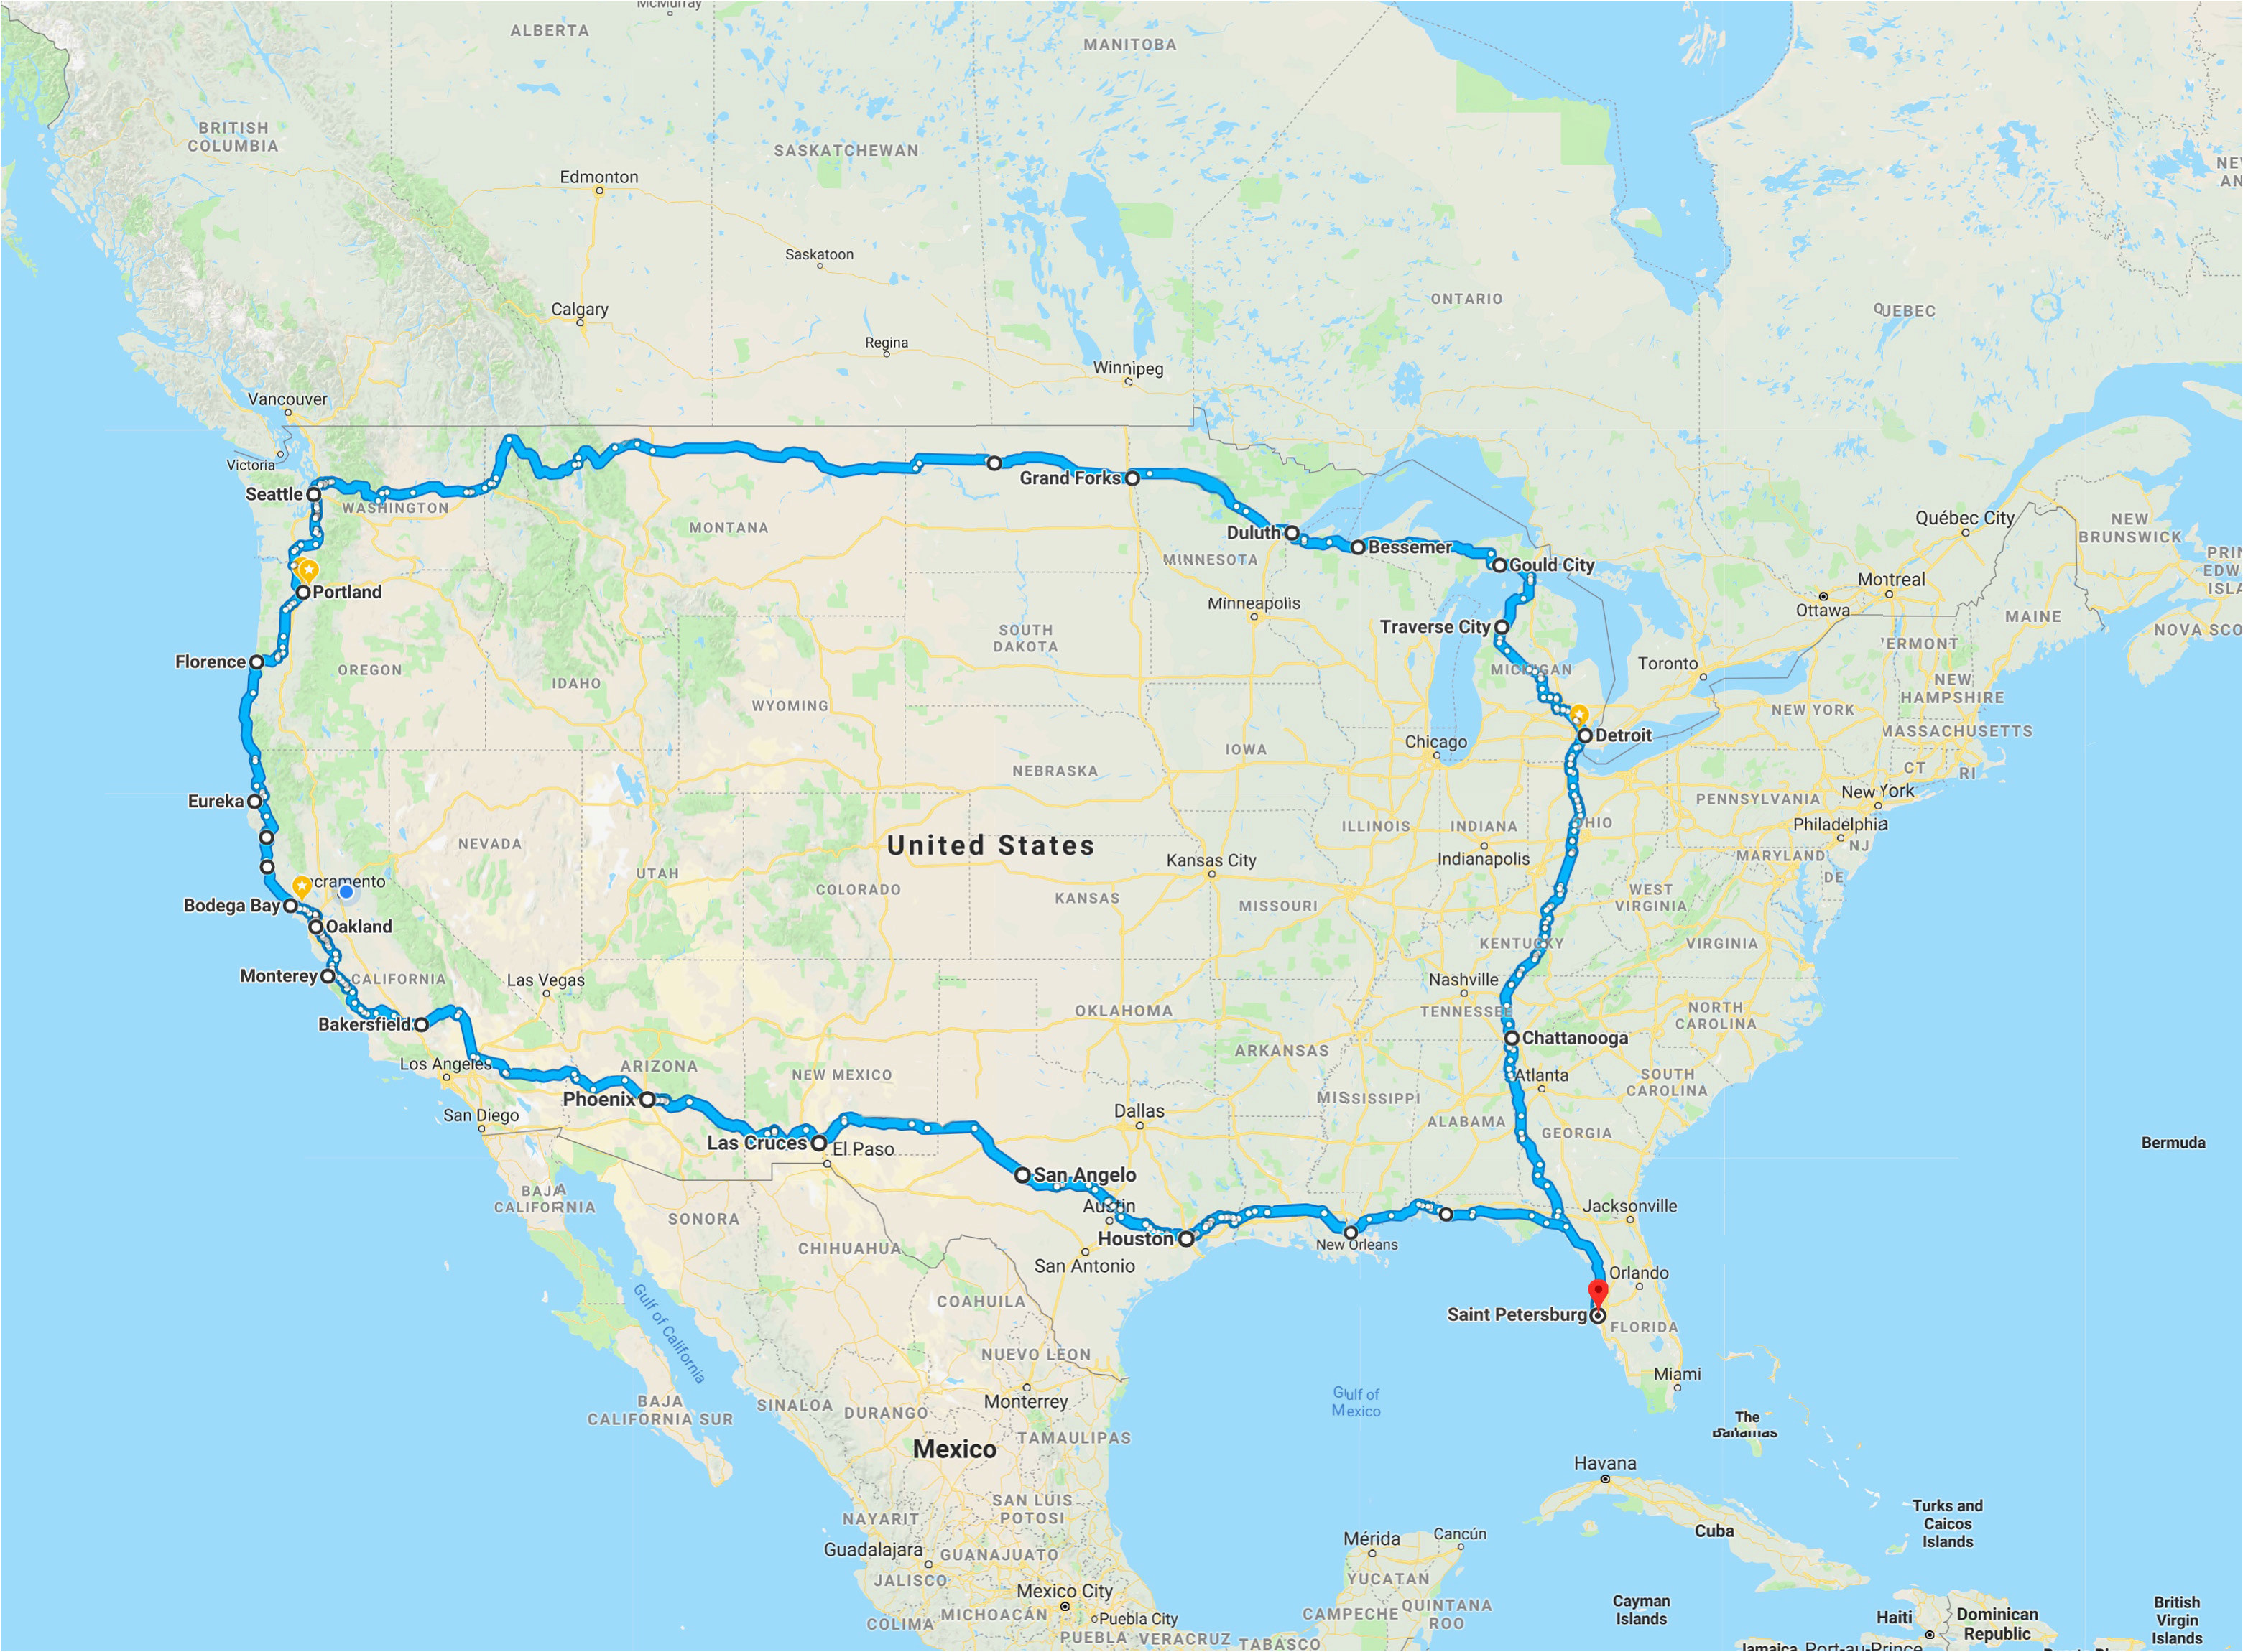 Tour Of California Route Map 1919 Franklin tour Of America 24 Hours Of Lemons Best California